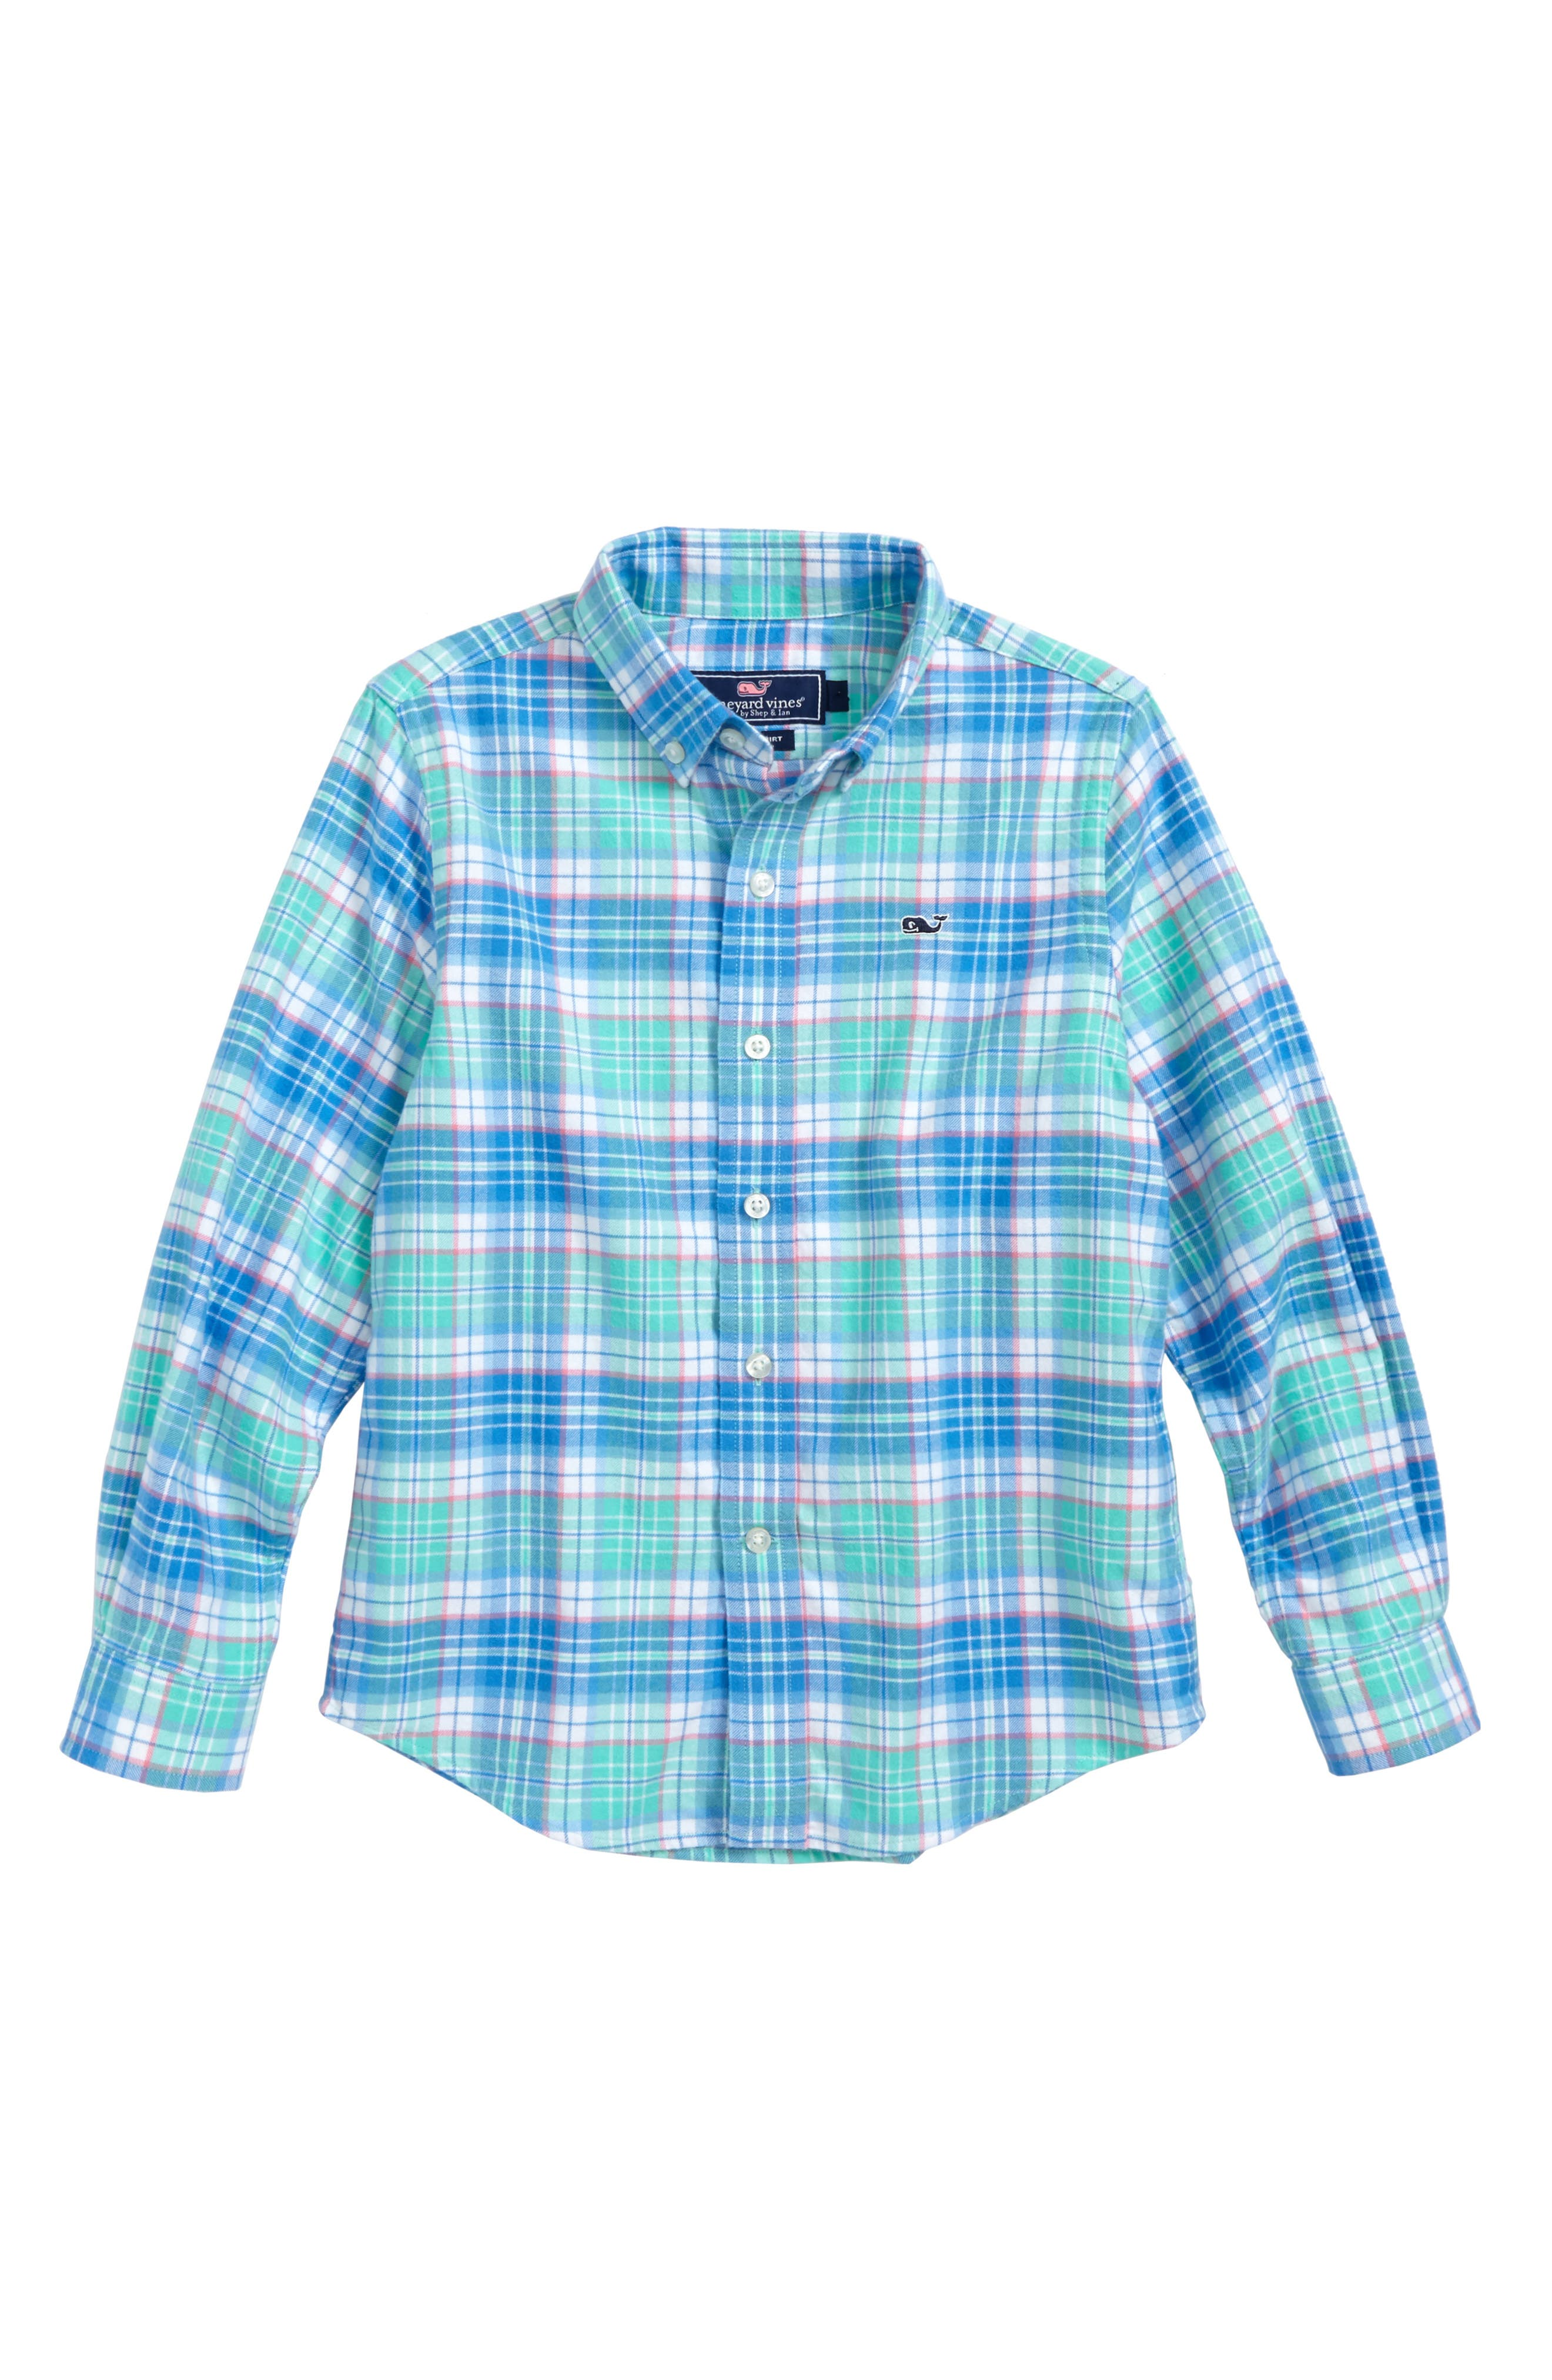 Sandspar Plaid Whale Flannel Shirt,                         Main,                         color,